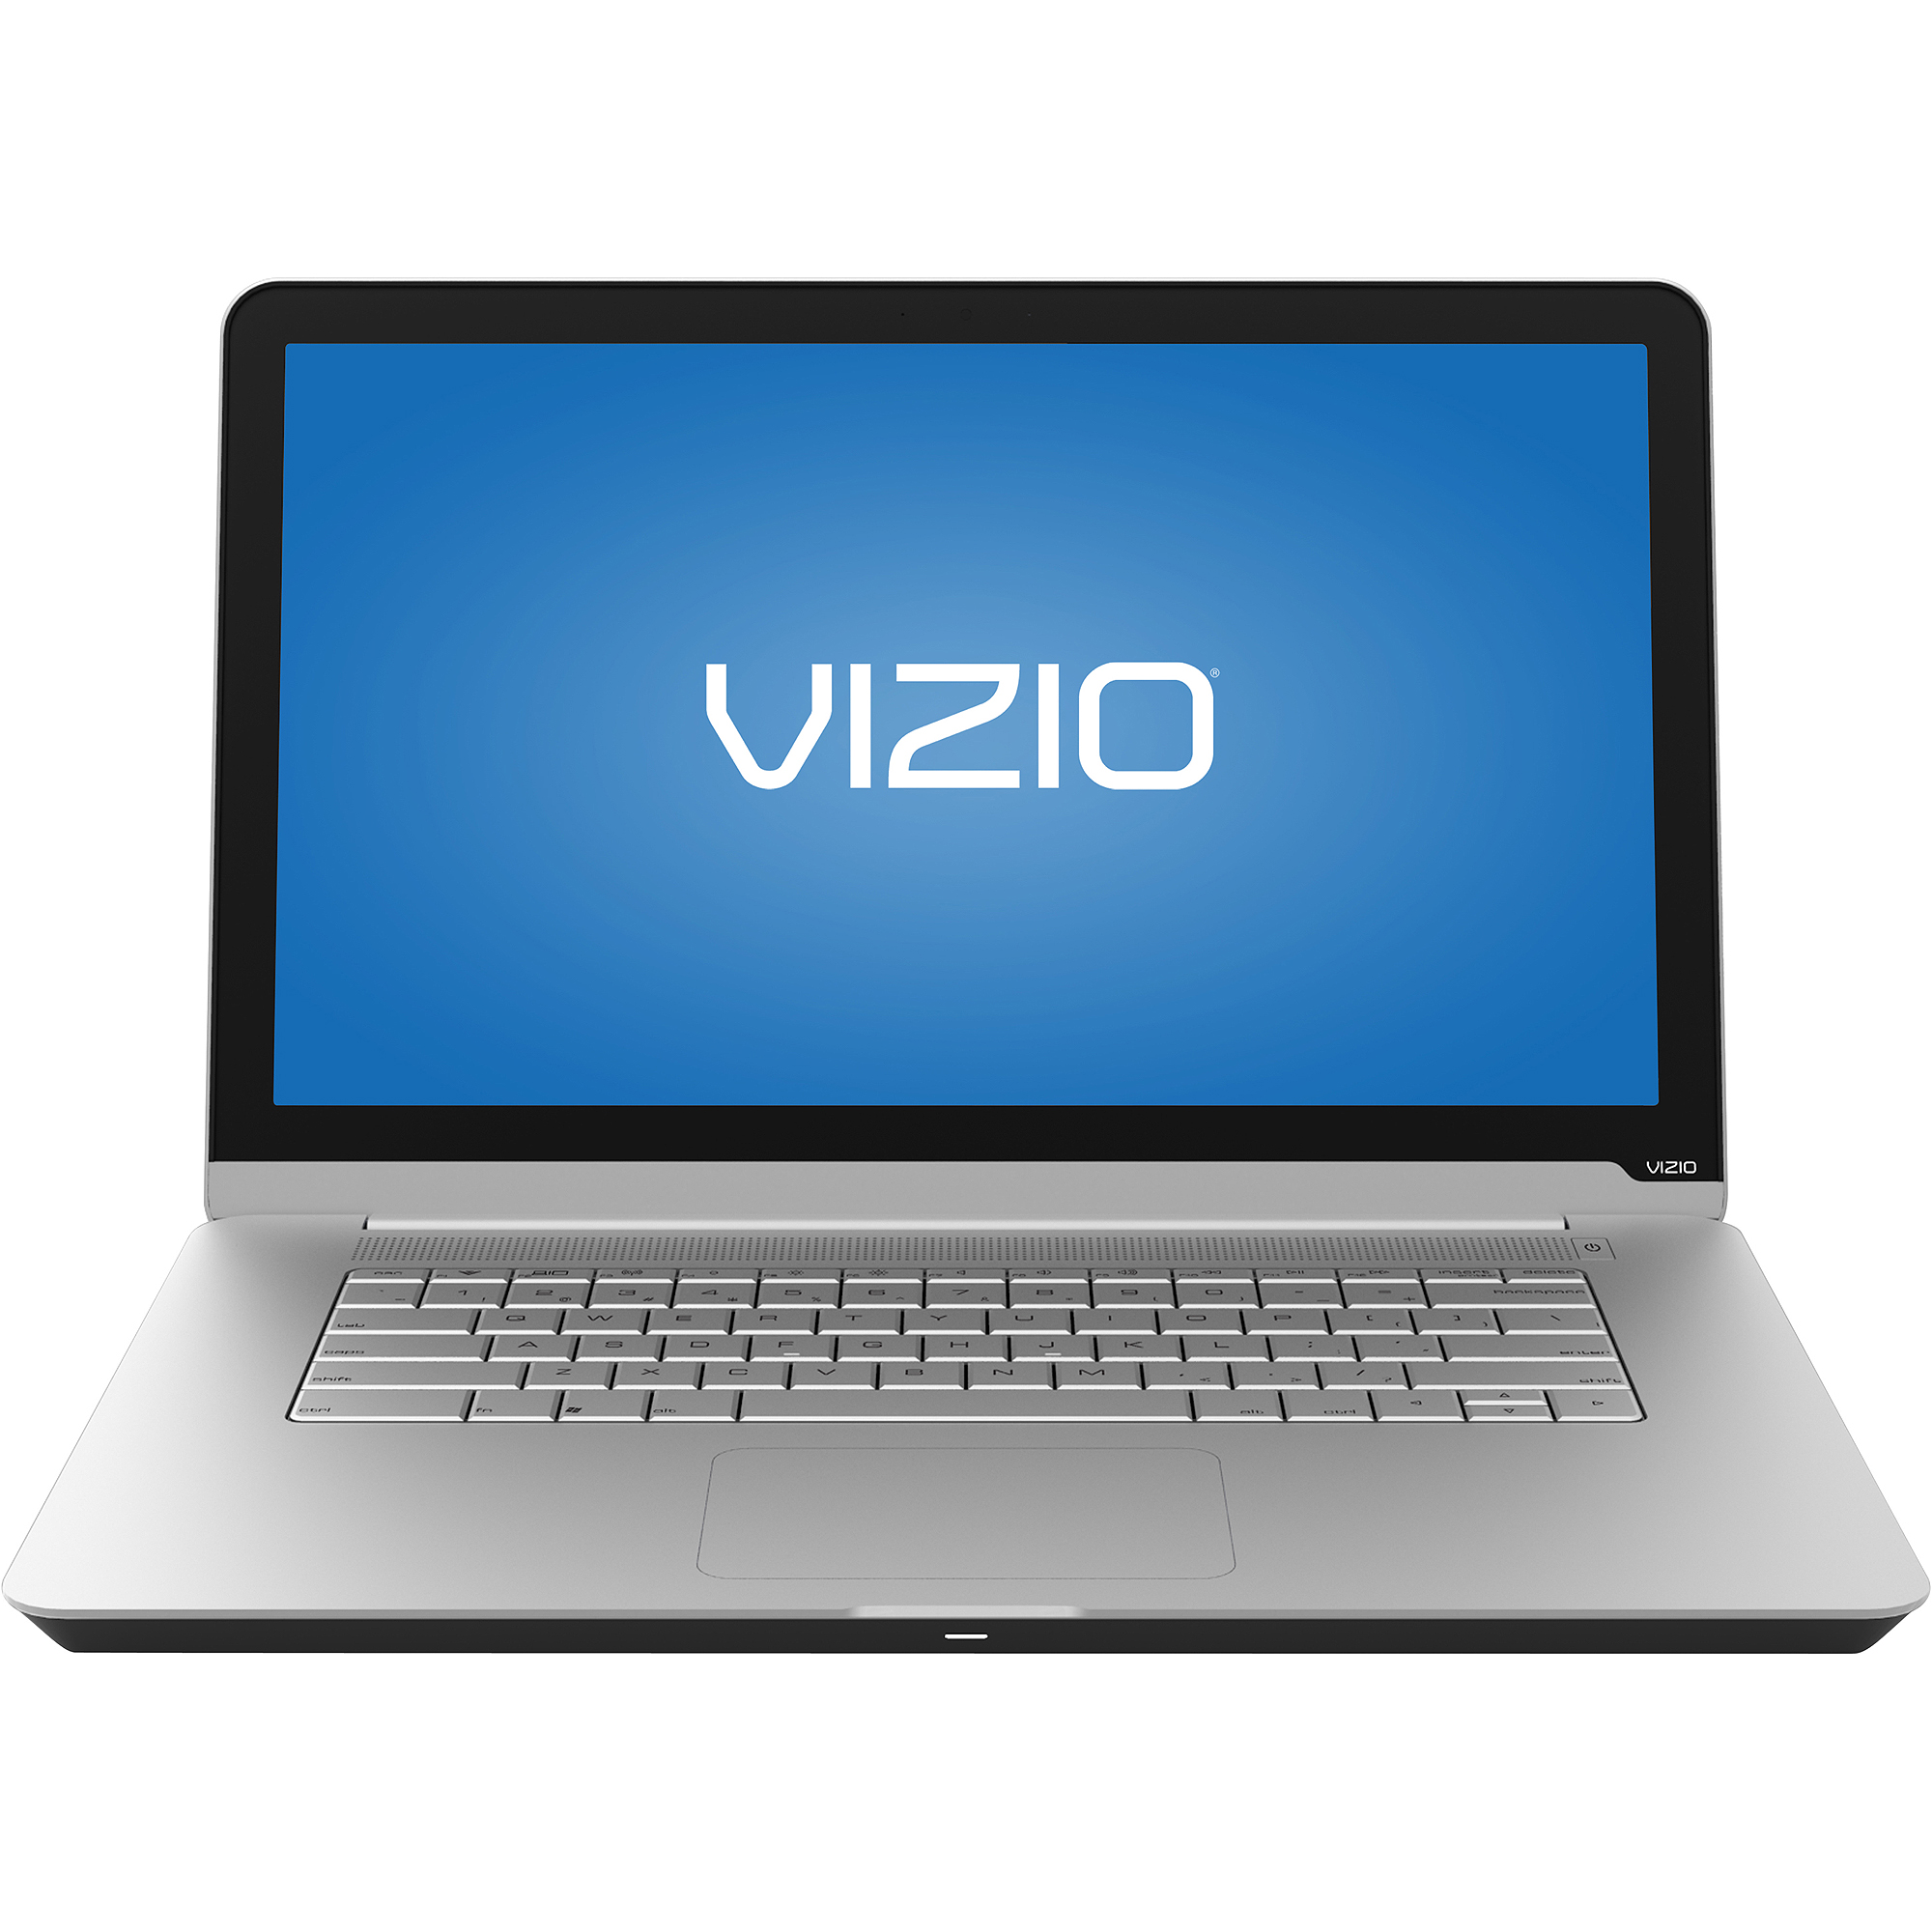 "VIZIO Silver 15.6"" CN15-A1 Laptop PC with Intel Core i5-3210M Processor and Windows 7 Home Premium"